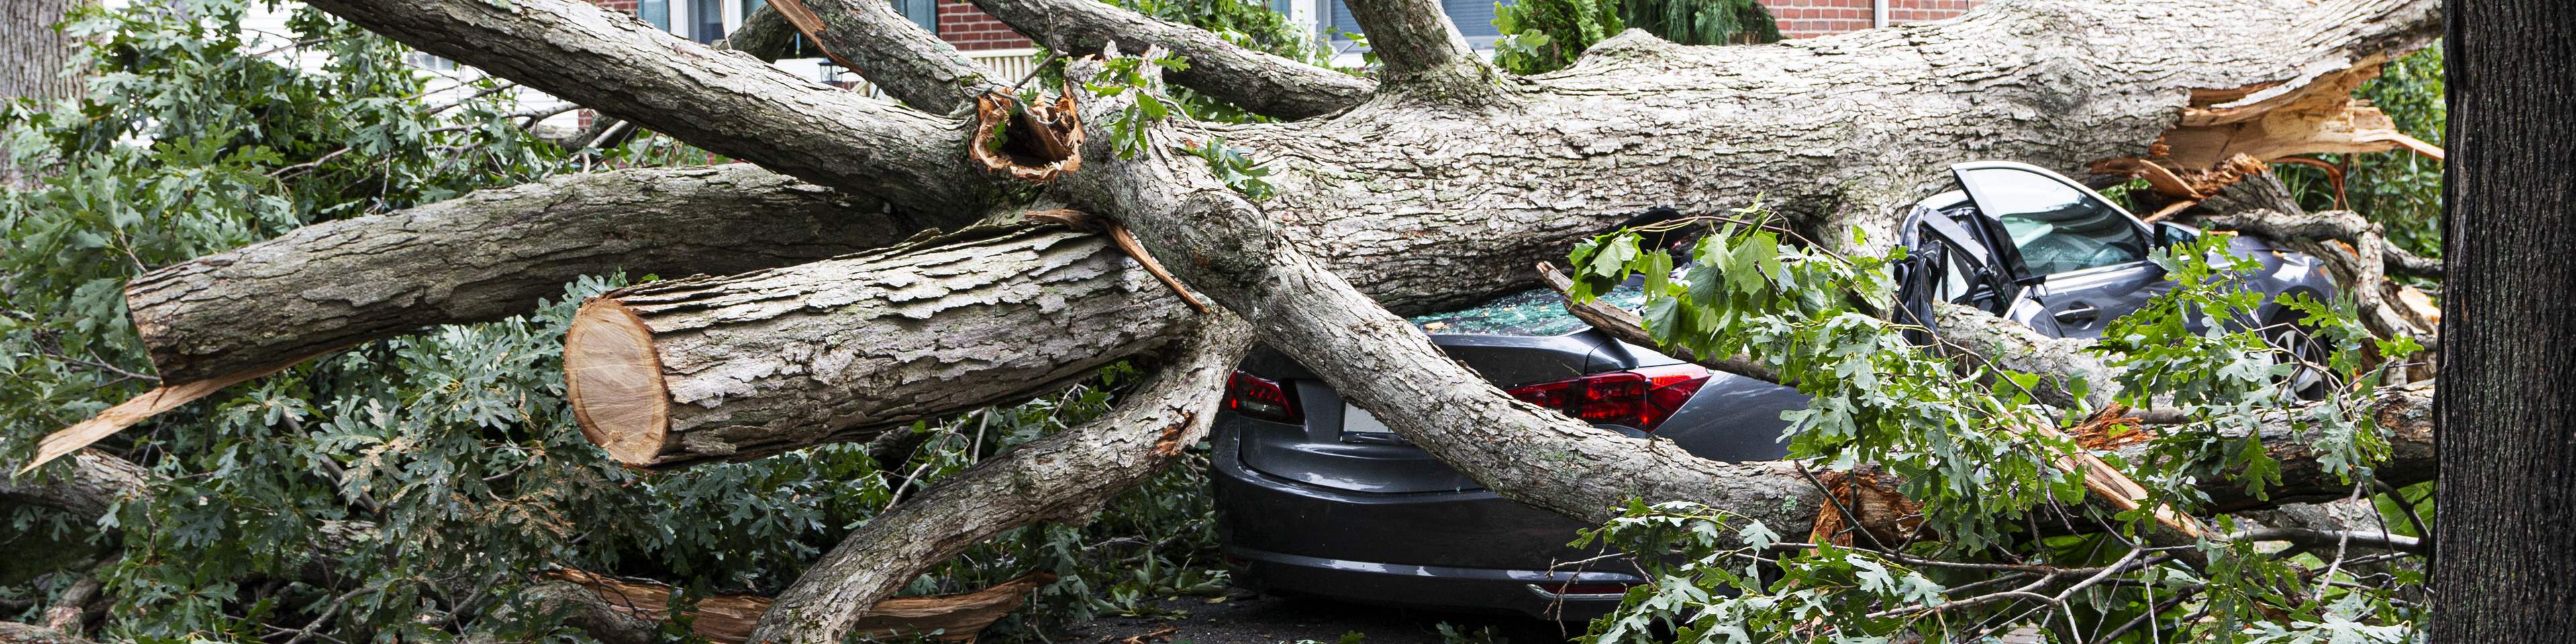 IRS announces tax relief for New Jersey victims of Hurricane Ida remnants: IRA and HSA deadlines postponed